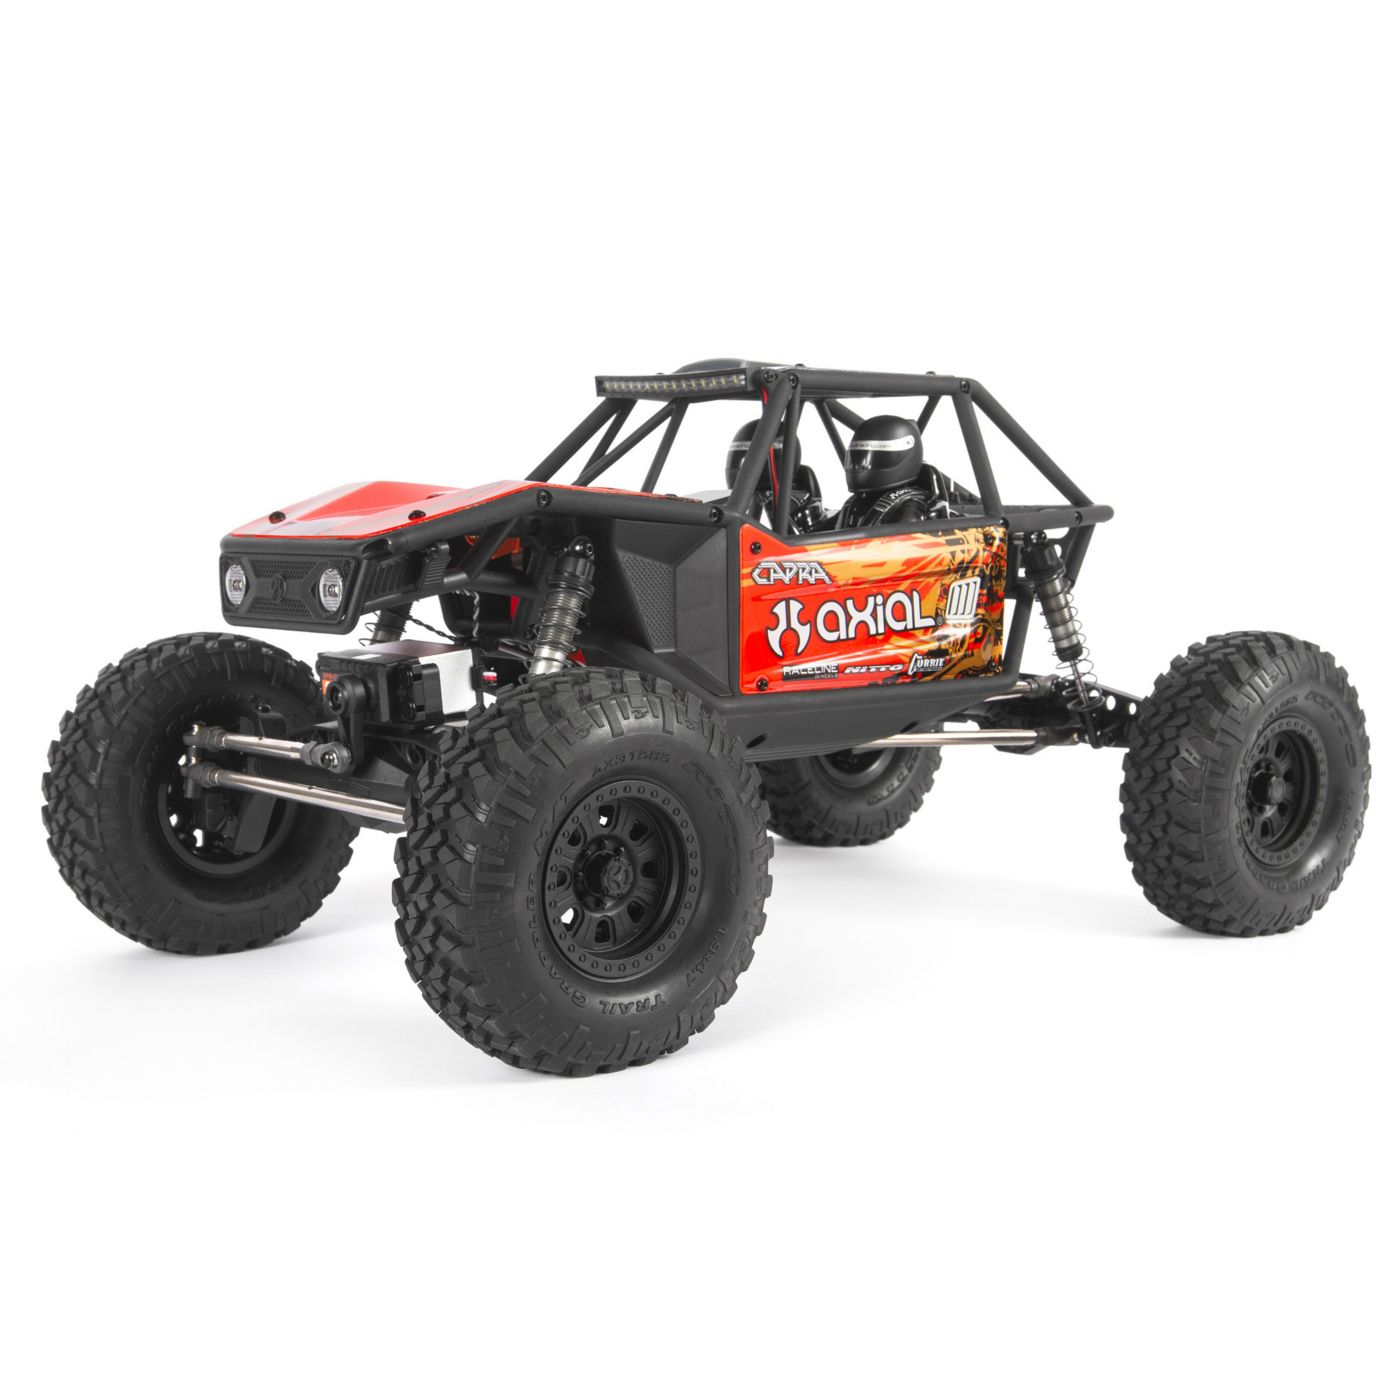 Axial Capra 1.9 Kit Unlimited Trail 4wd RTR 01x